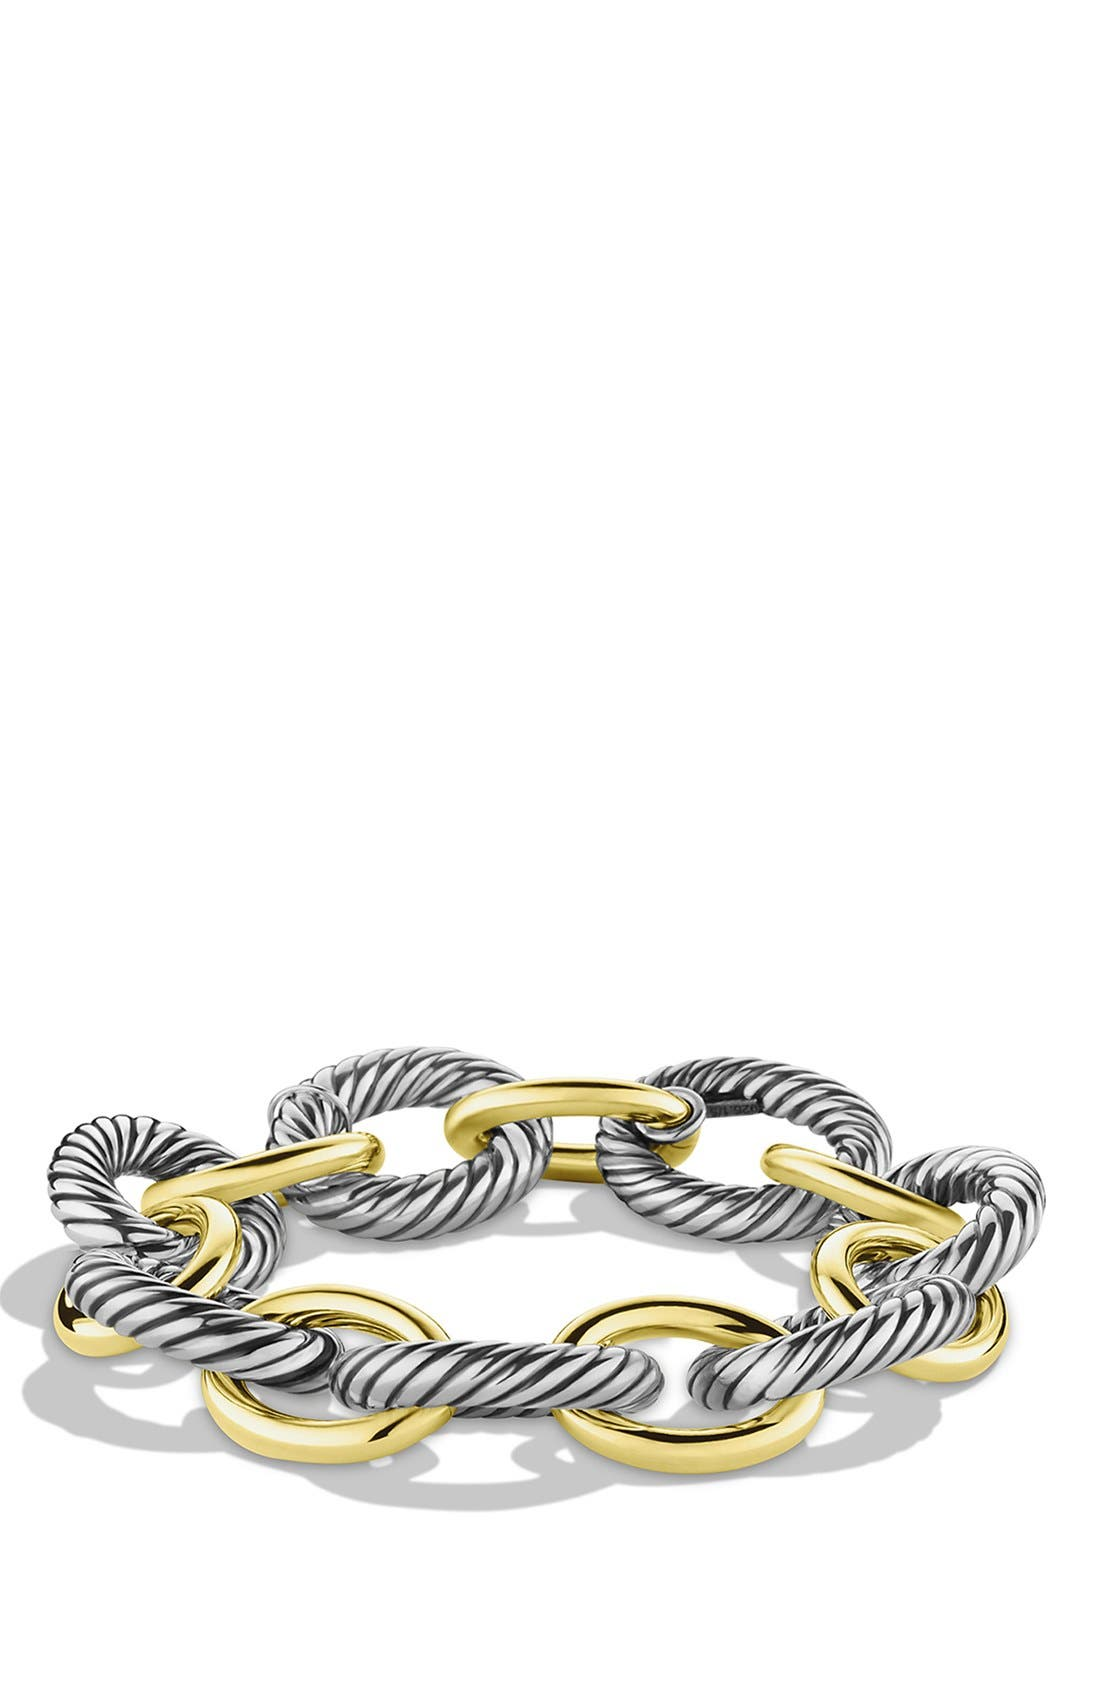 DAVID YURMAN Oval Extra-Large Link Bracelet with Gold